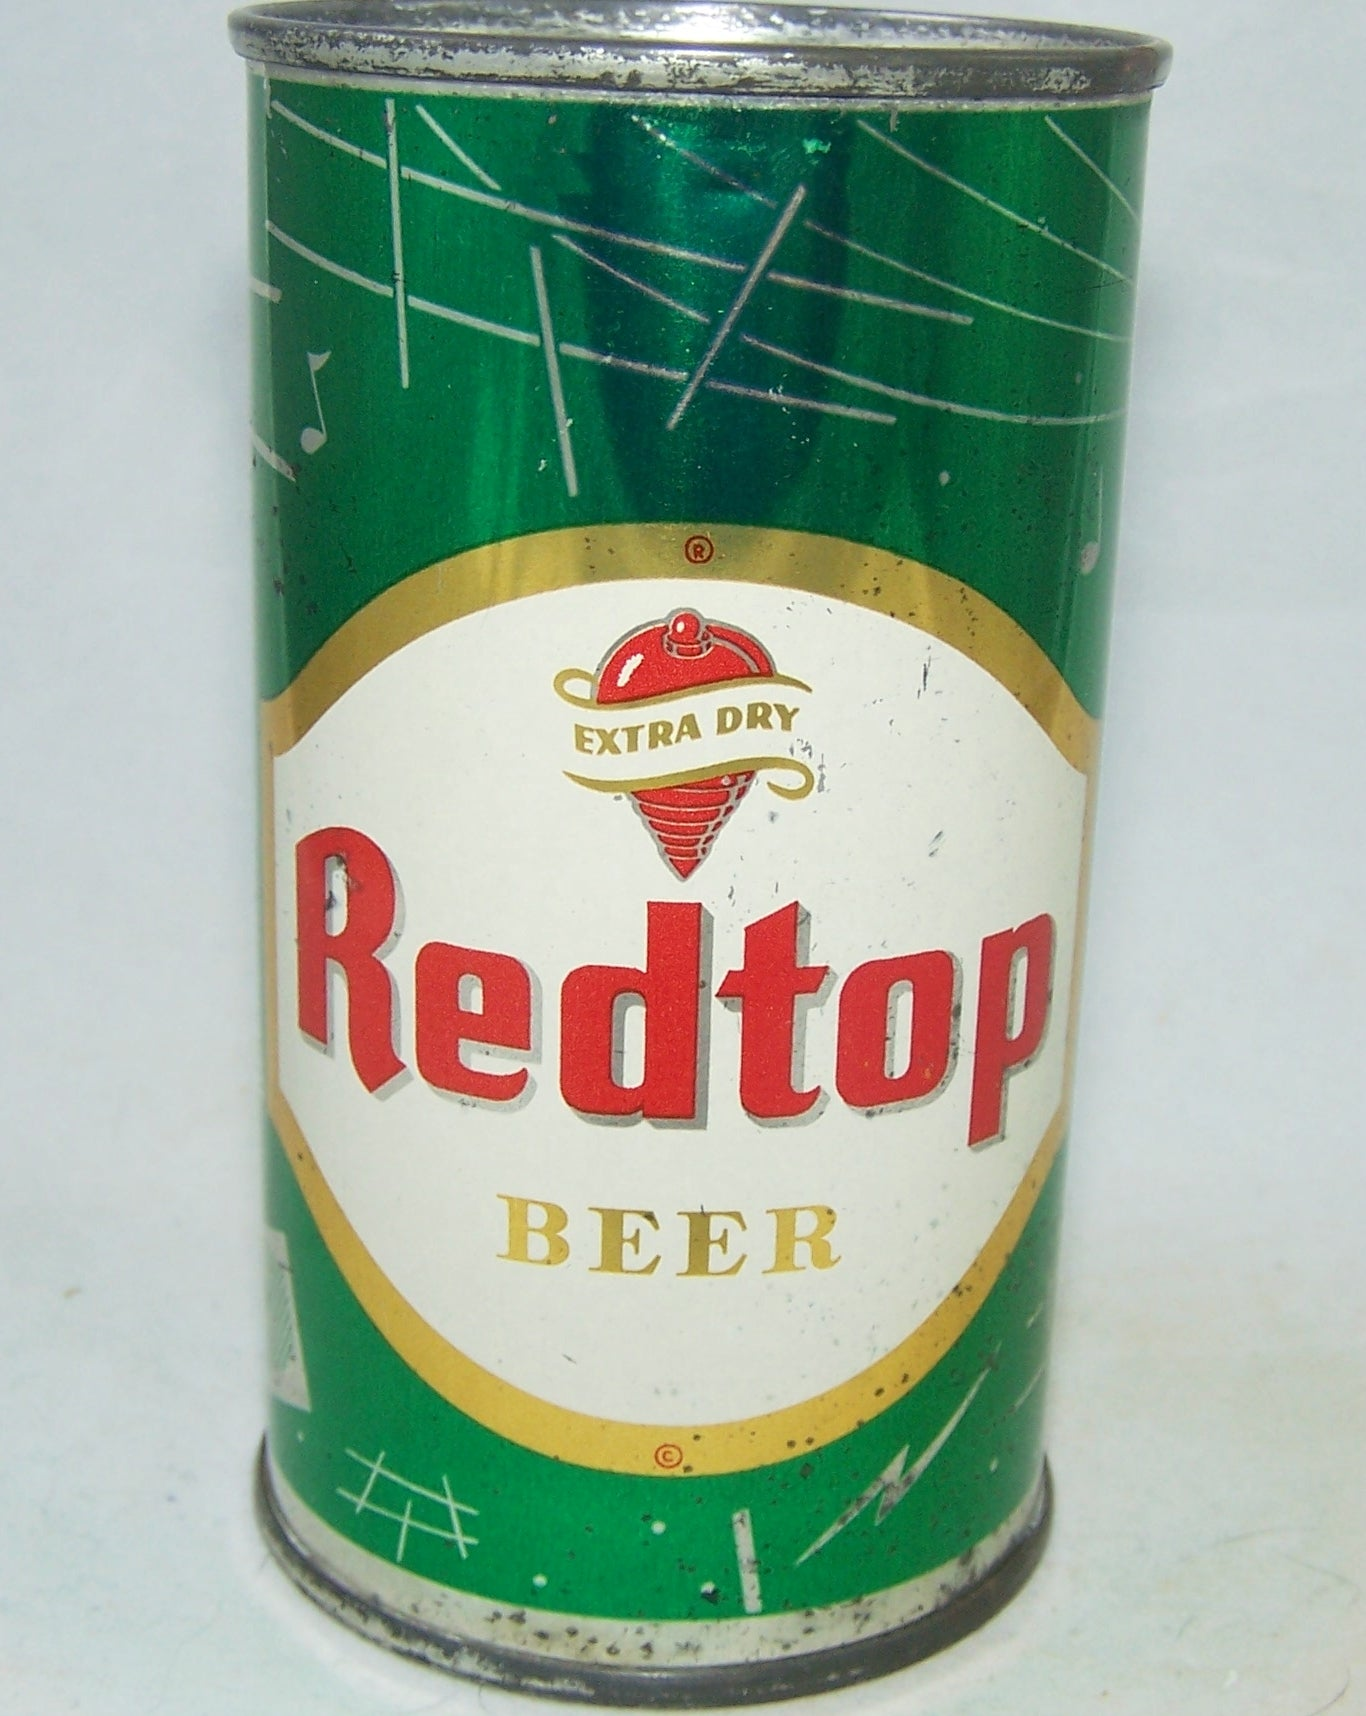 Red Top Beer (Radio) USBC 120-14, Grade 1/1- Sold on 04/06/18